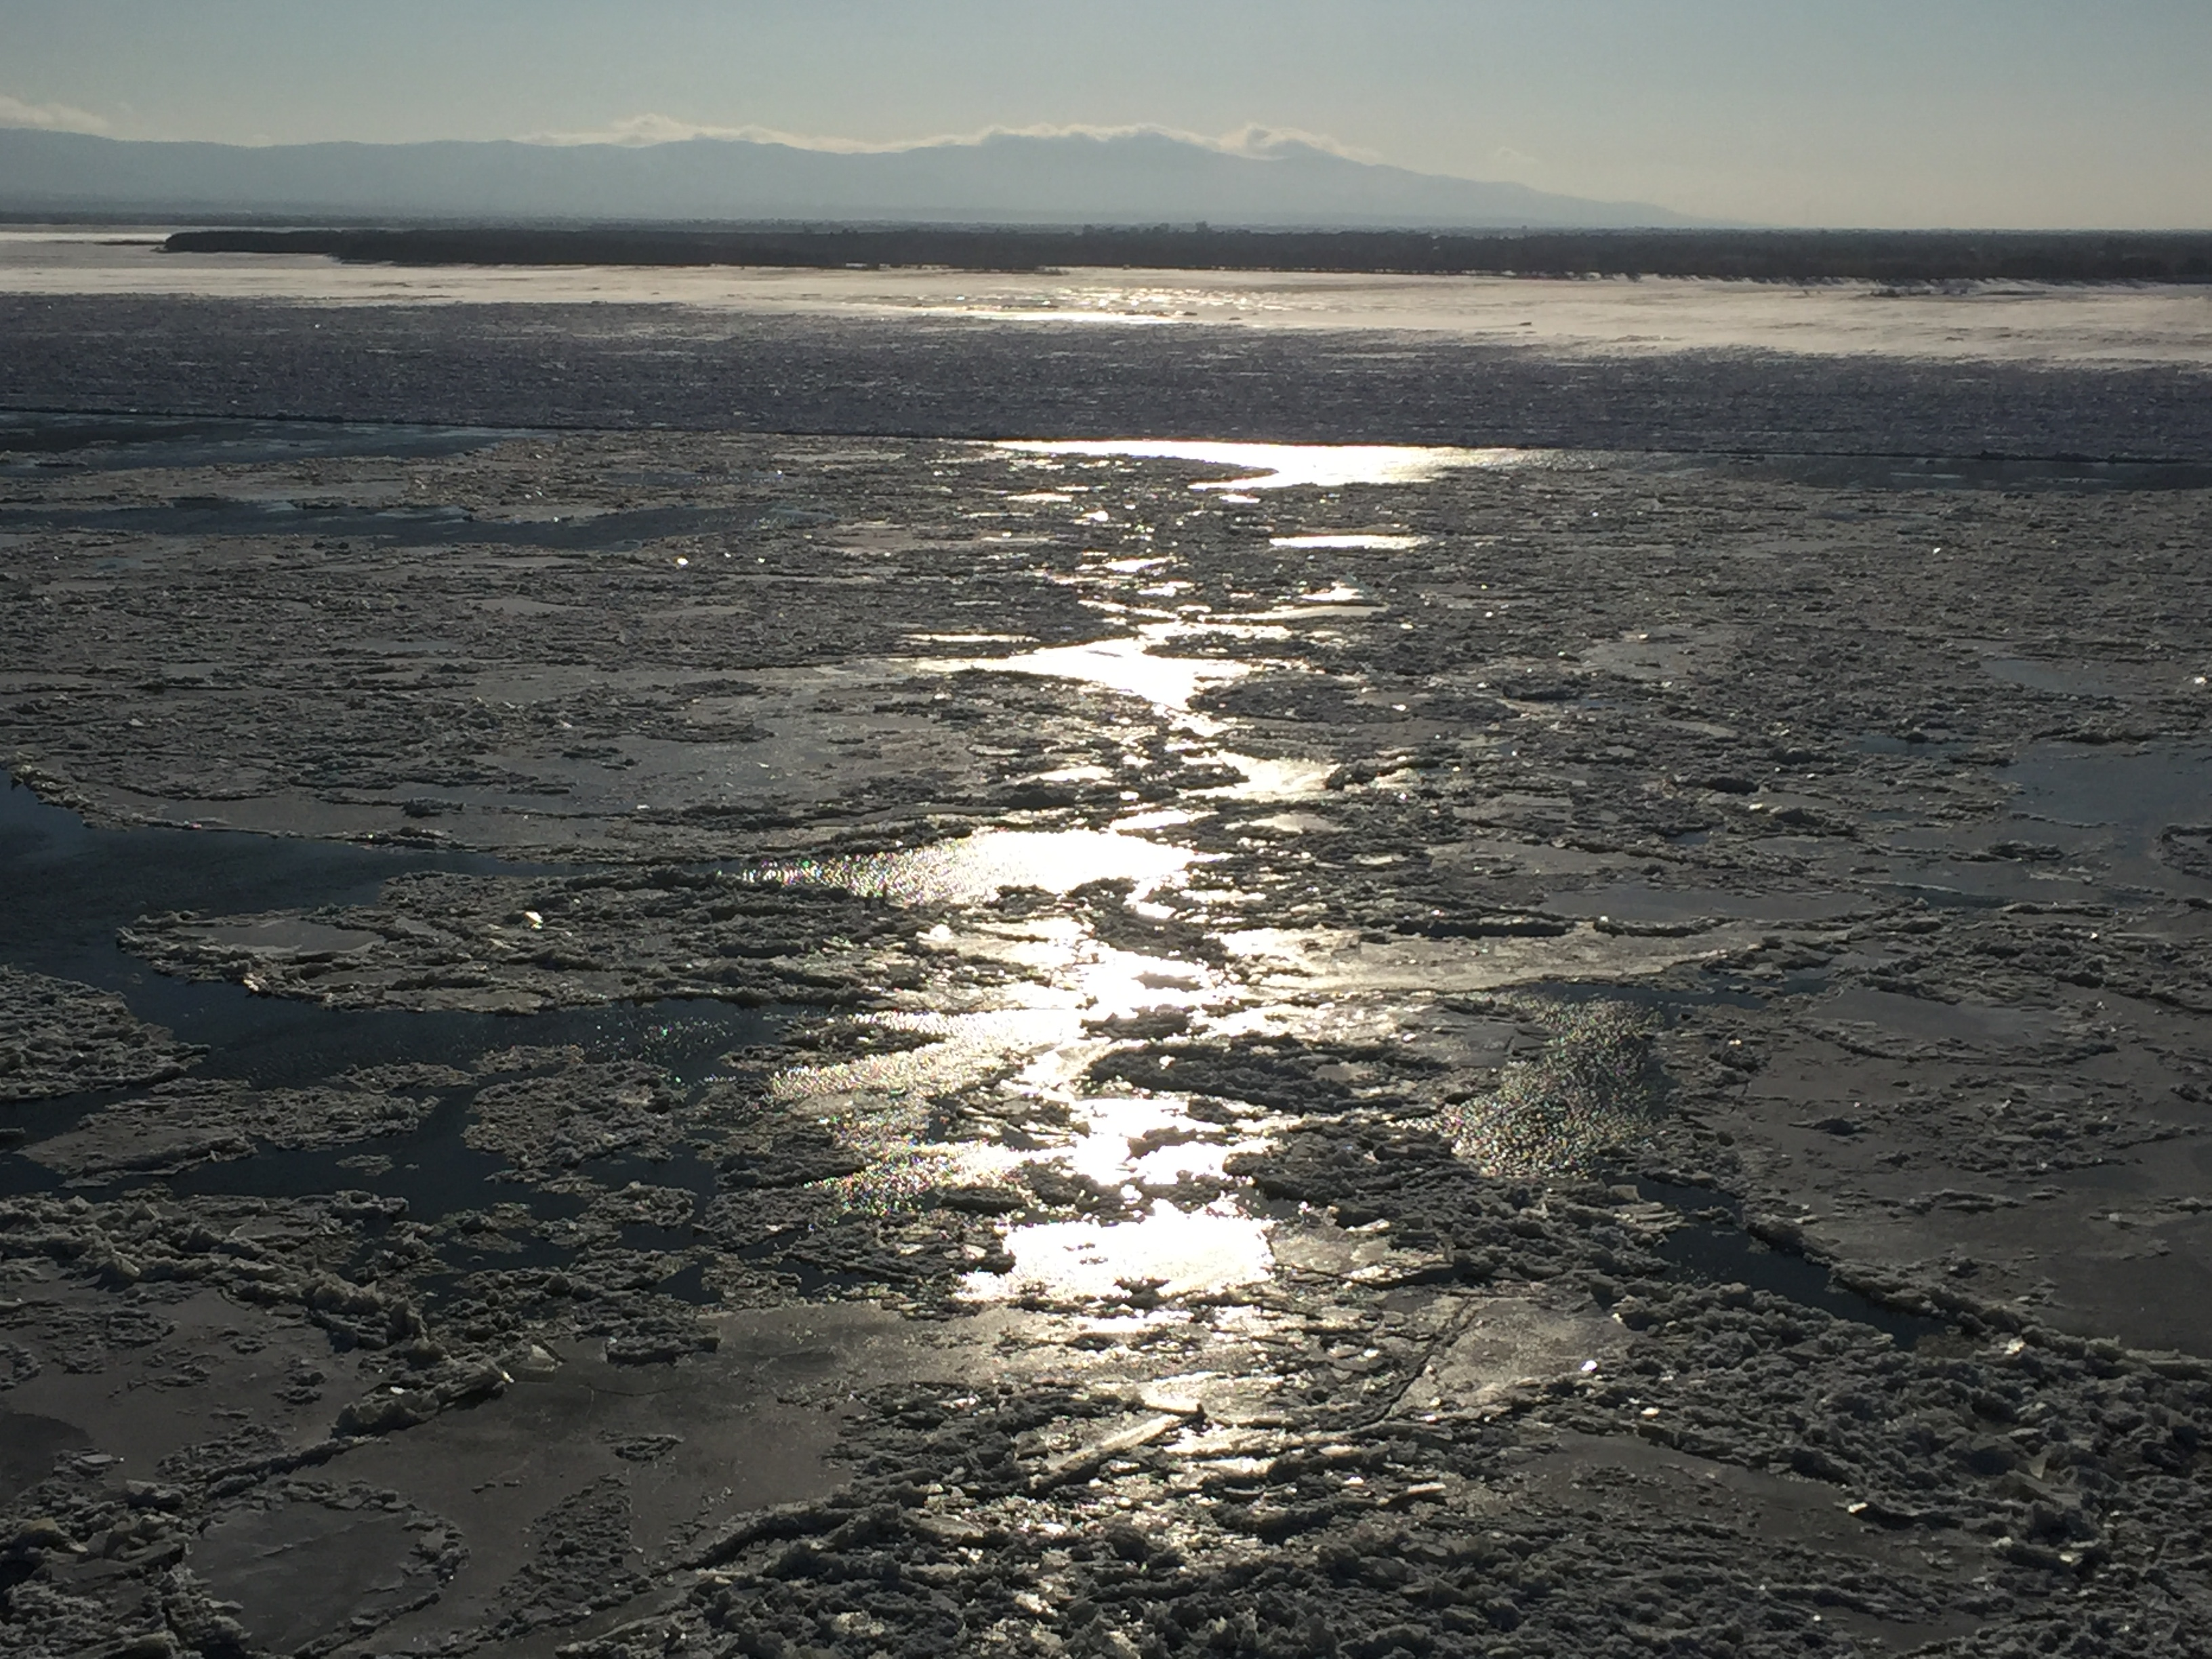 A shot of the Amur River from the city of Khabarovsk, in Far East Russia.